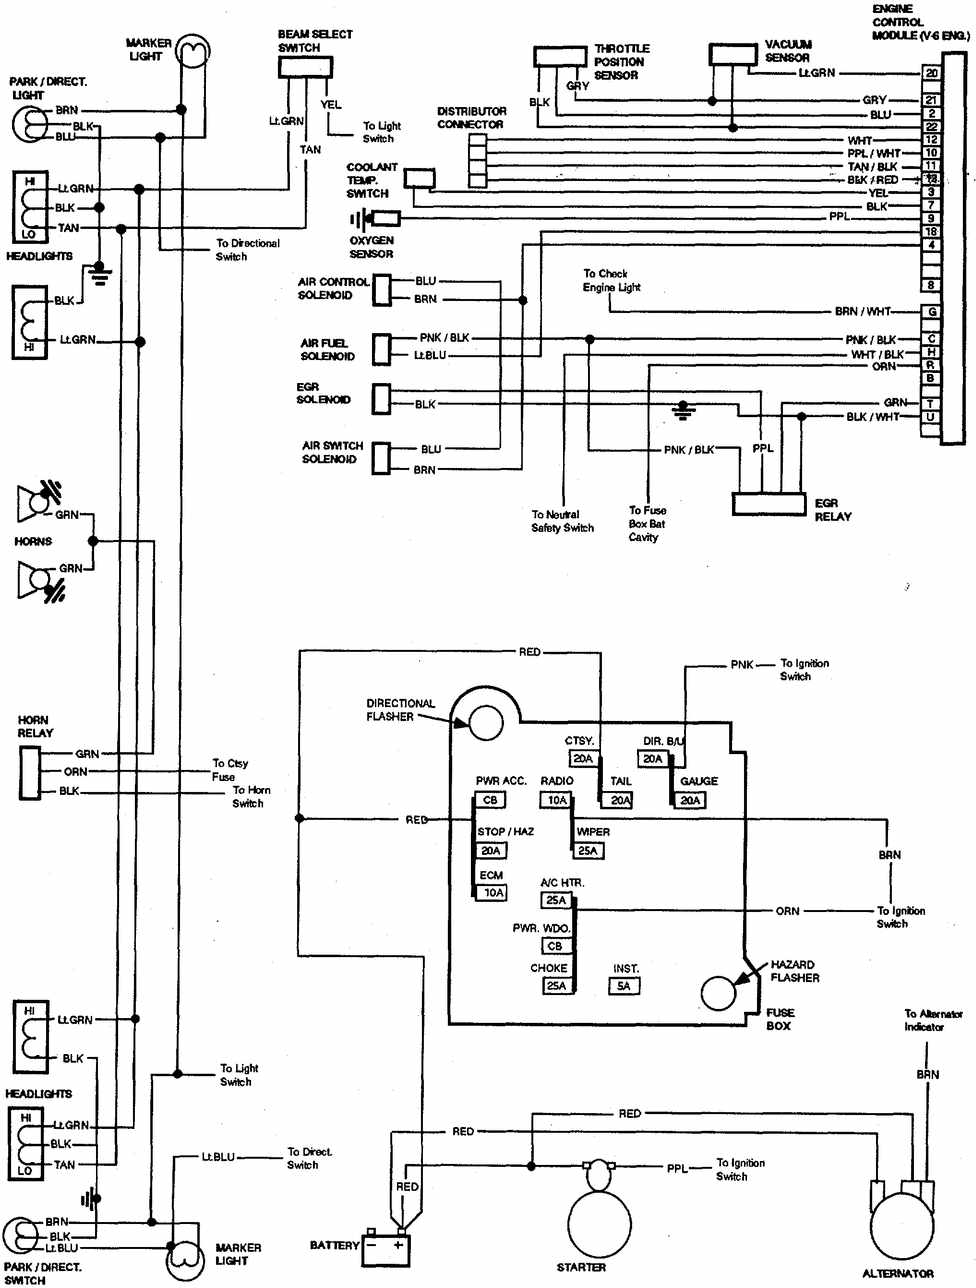 1991 chevrolet caprice fuse box diagram